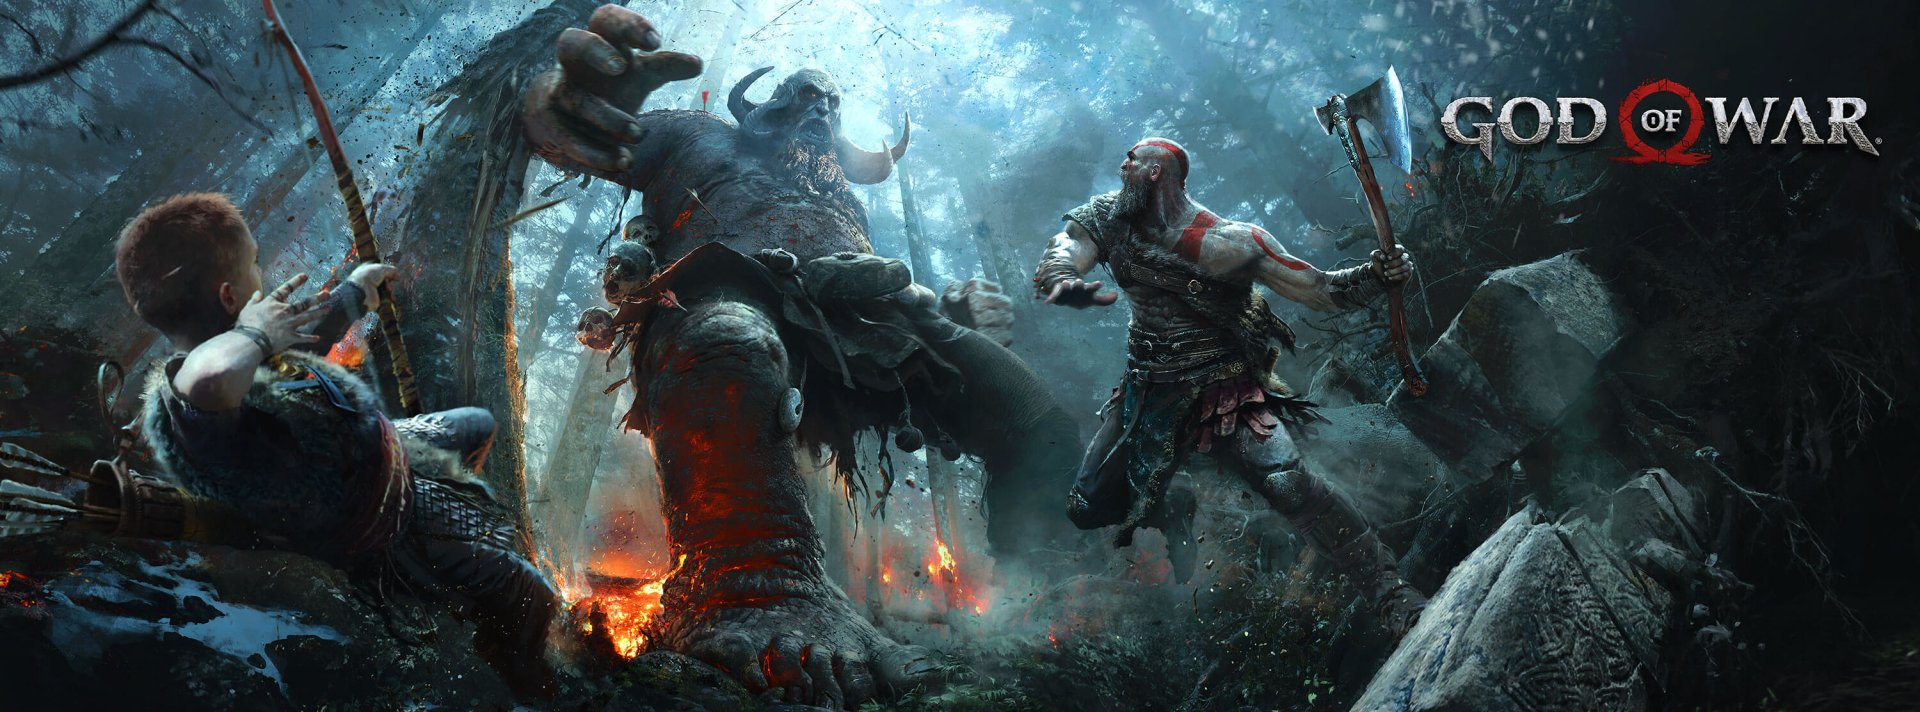 136 Kratos God Of War Fondos De Pantalla Hd Fondos De